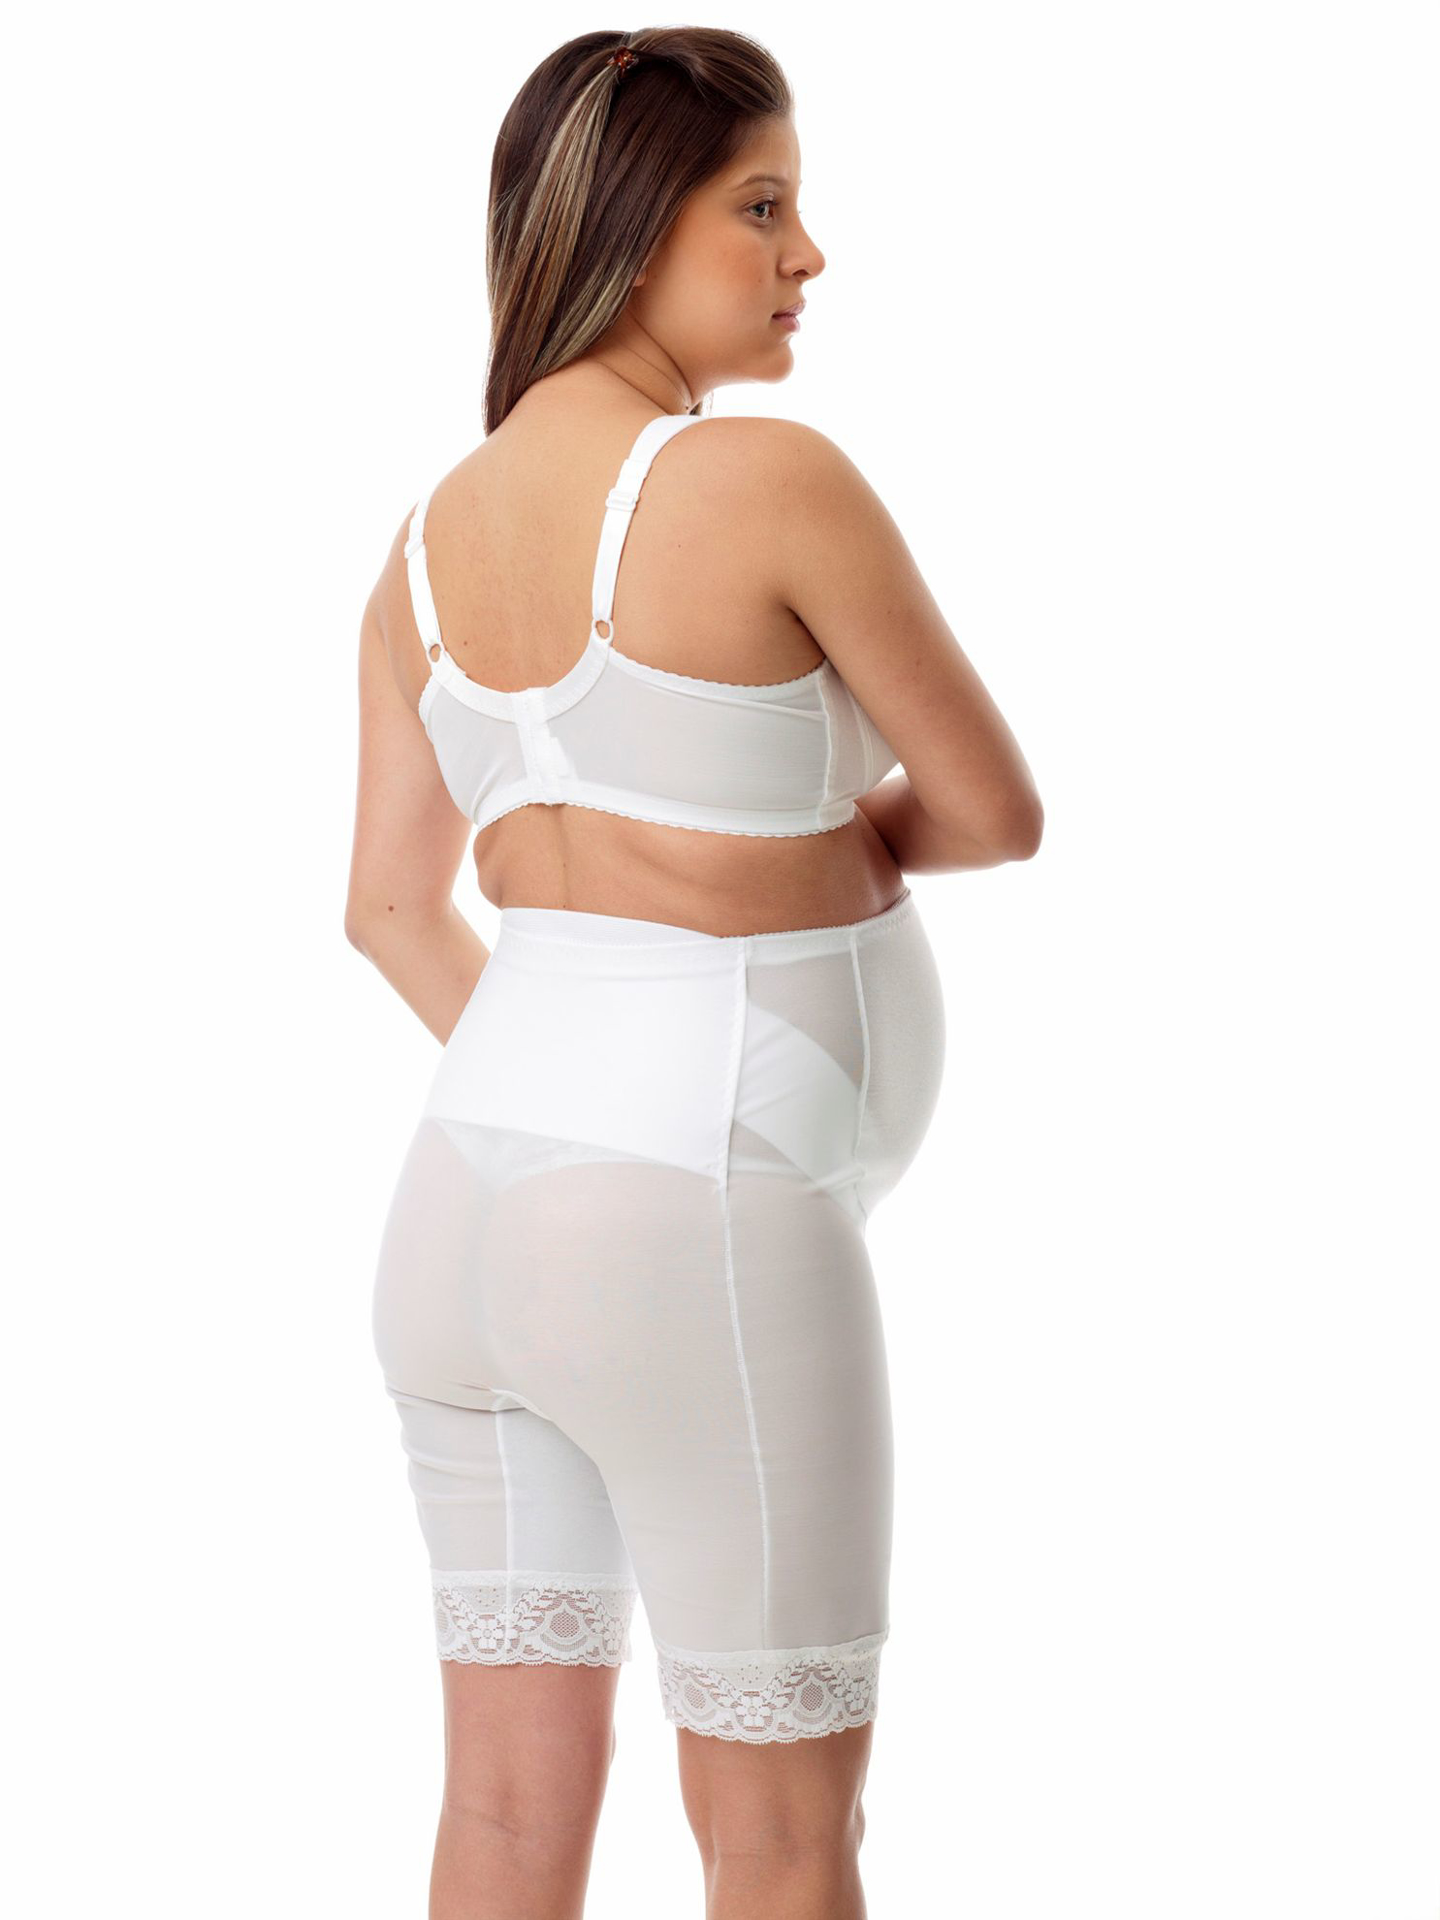 Picture of Maternity Back and Tummy Support Girdle with Varicosity Belt